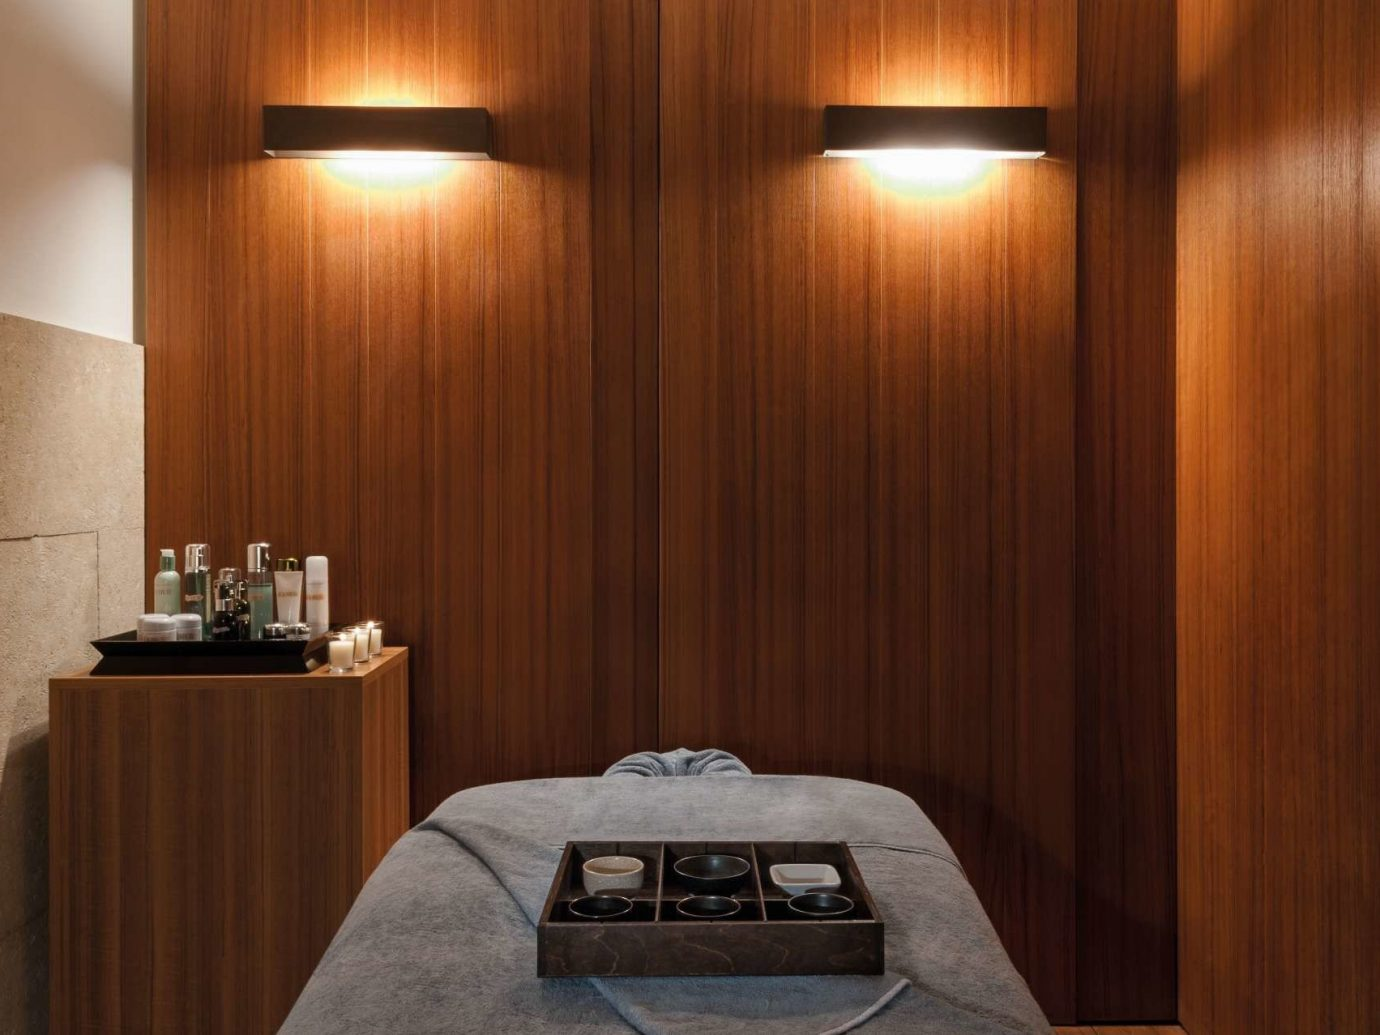 ambient lighting chic dim Health + Wellness Hotels interior lights Luxury massage moody private relaxation Spa Spa Retreats treatment wall indoor room interior design lighting Suite wood